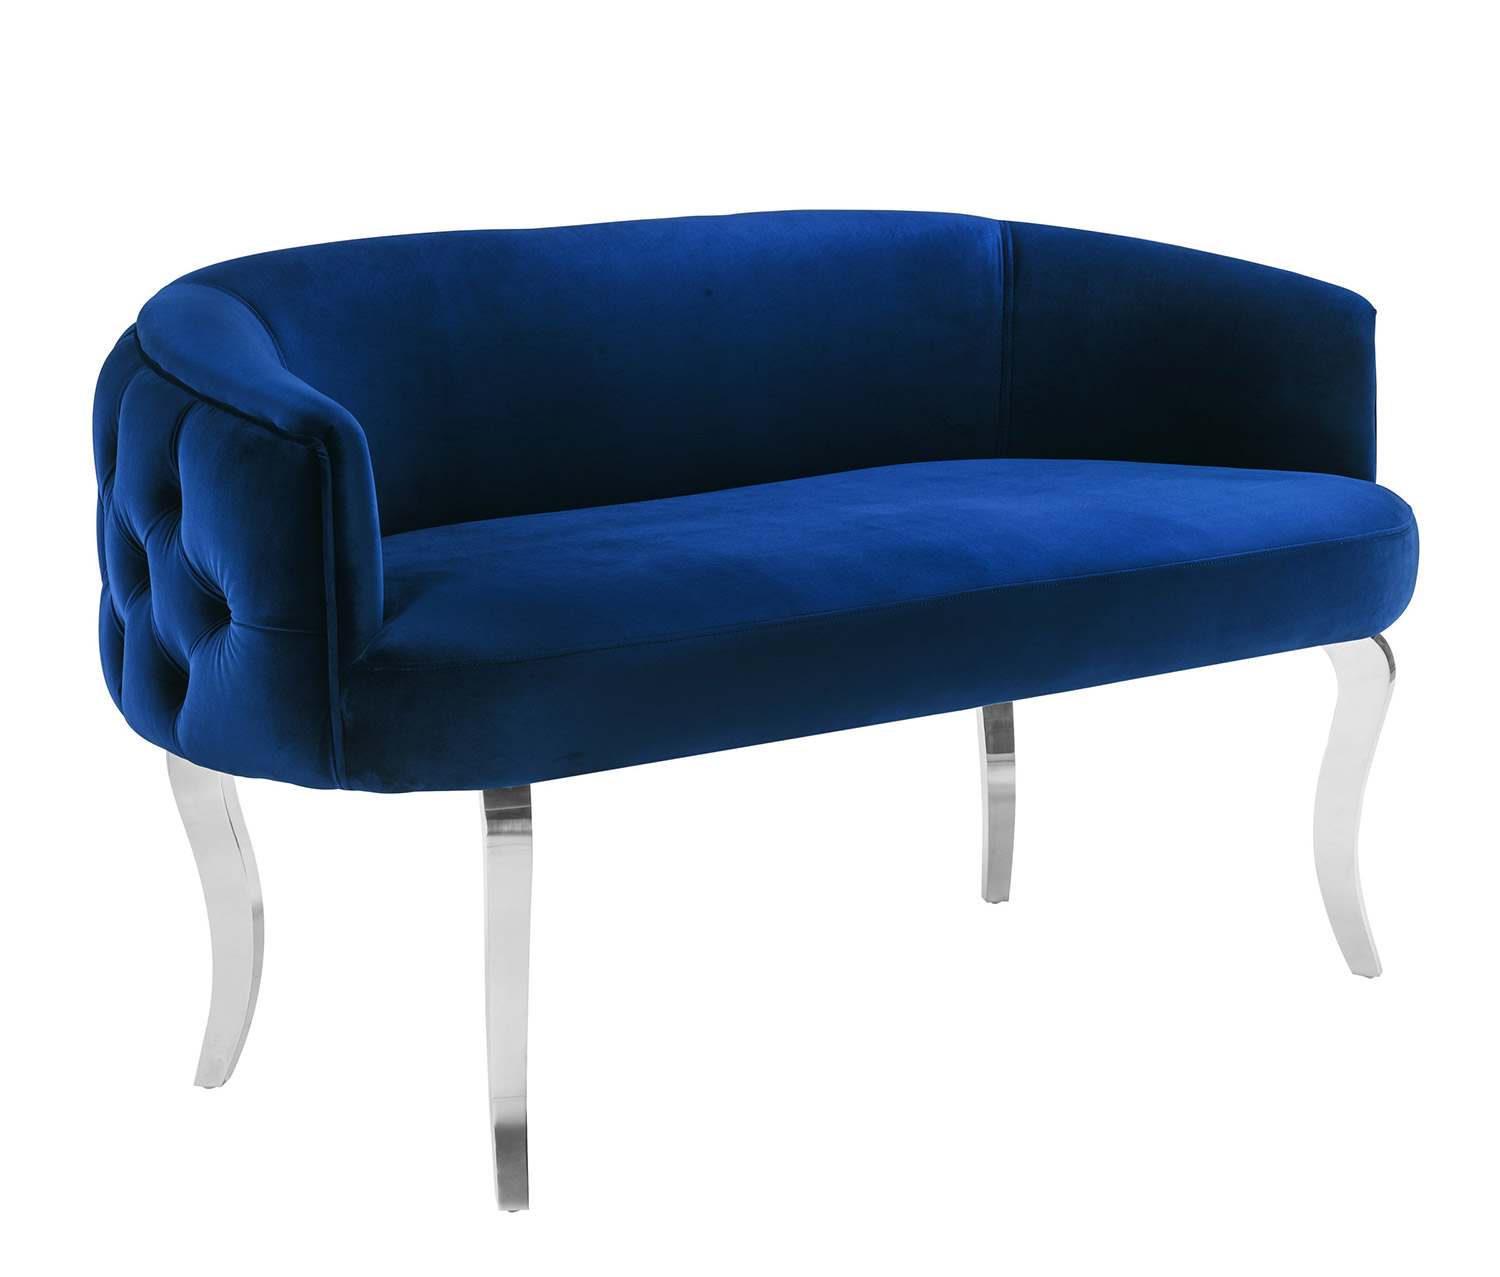 TOV Furniture Adina Loveseat with Silver Legs - Navy